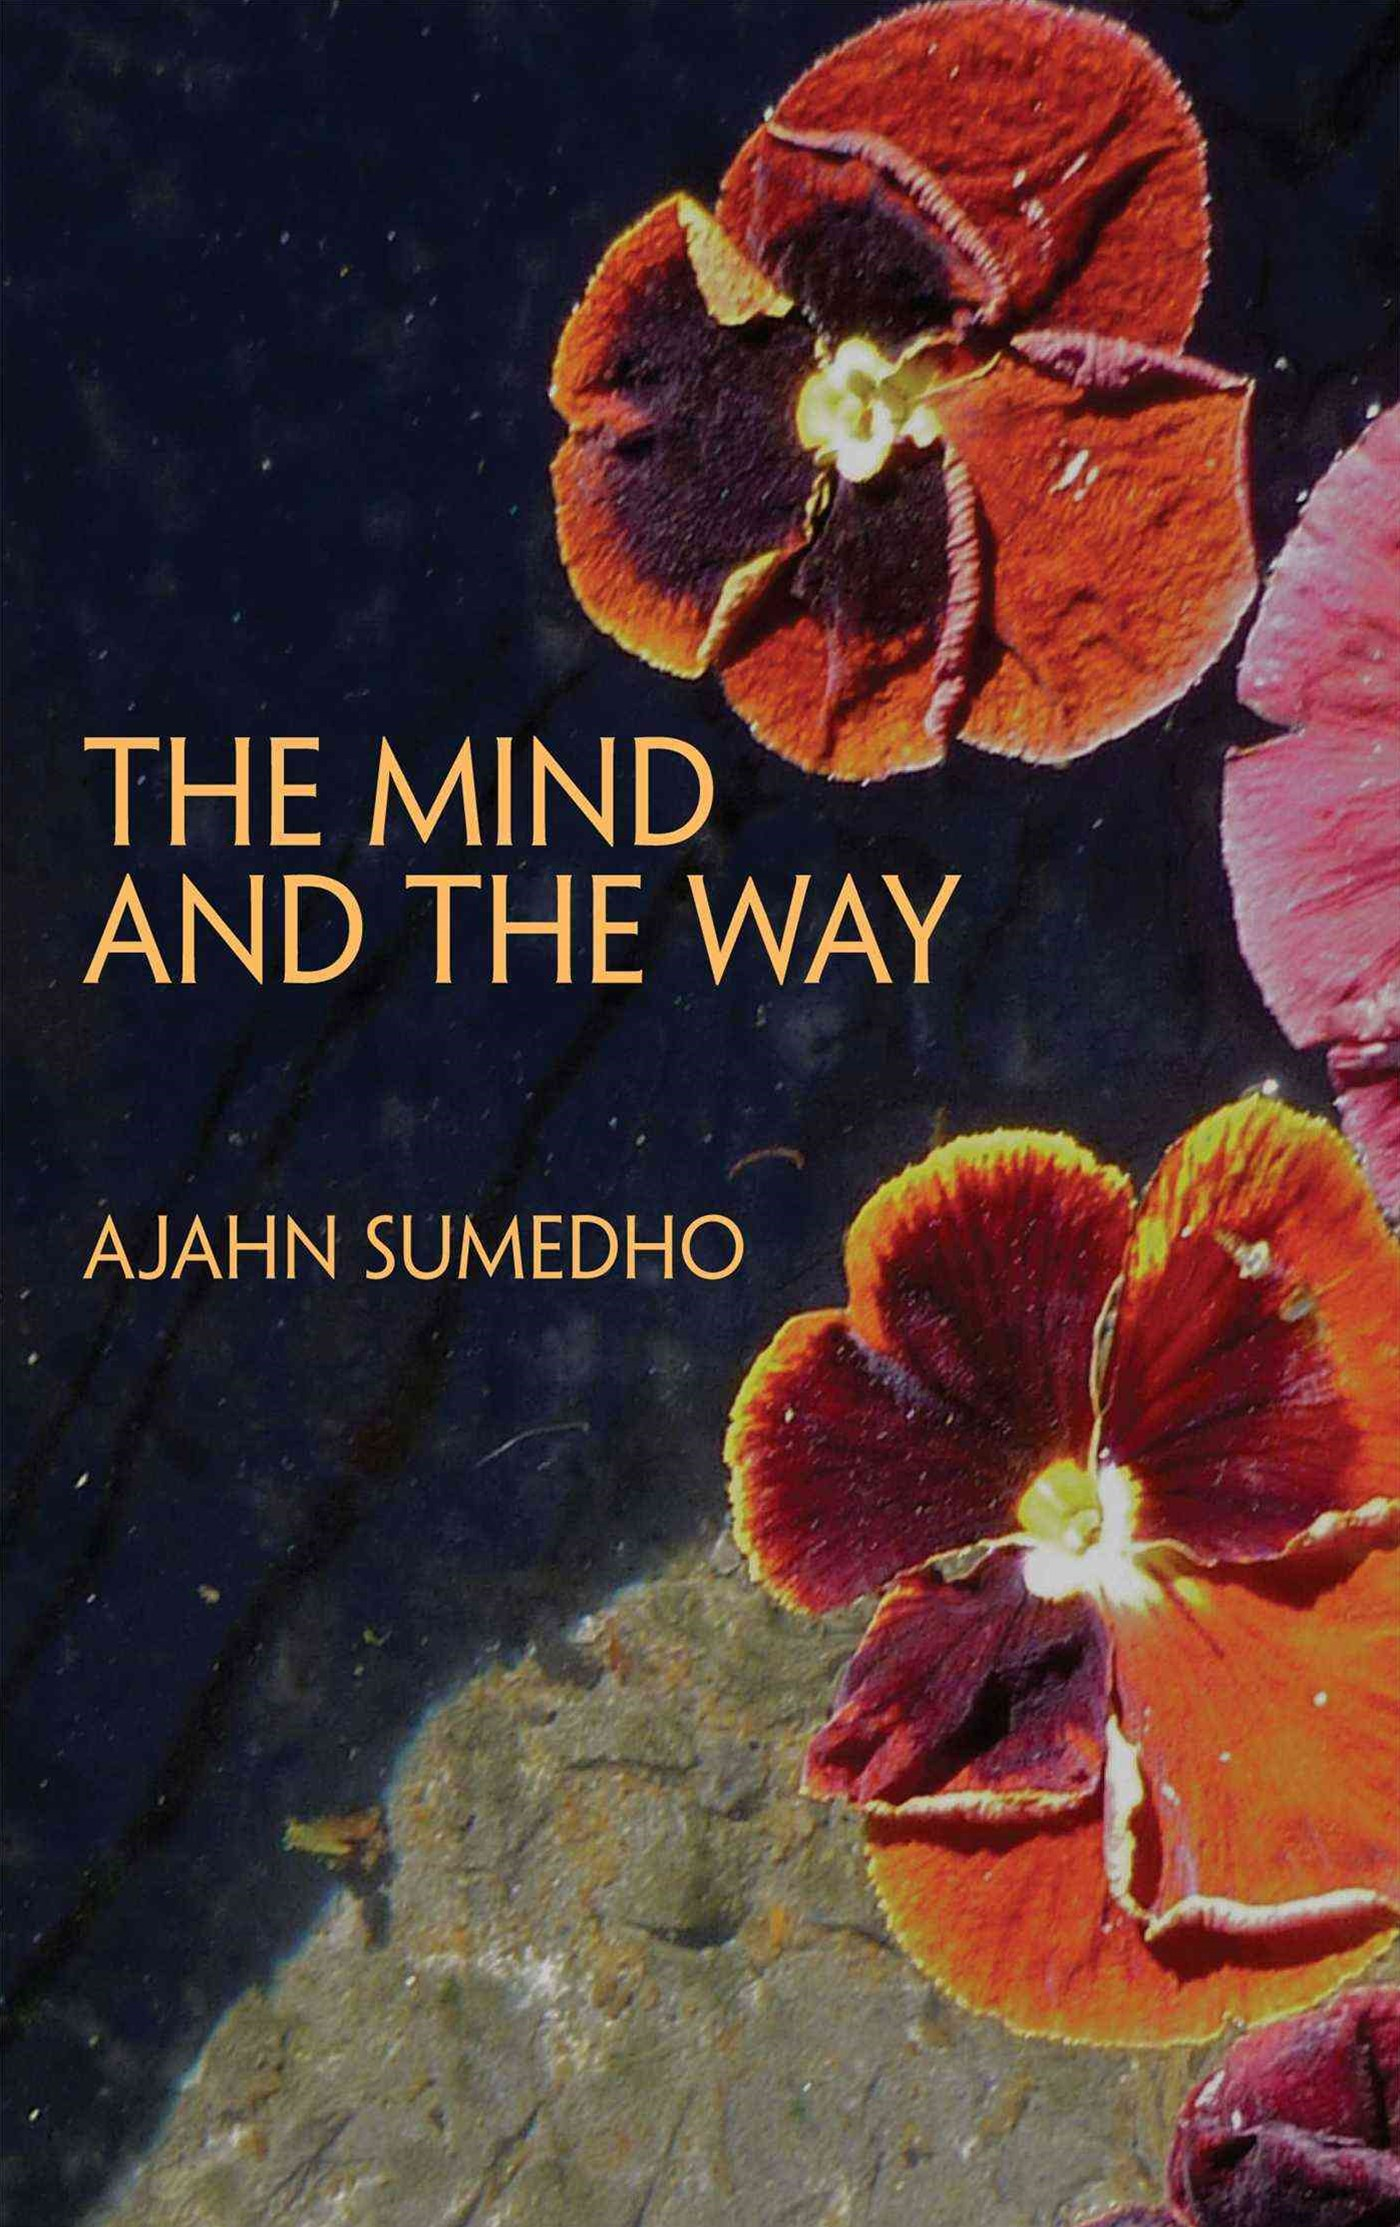 The Mind and the Way